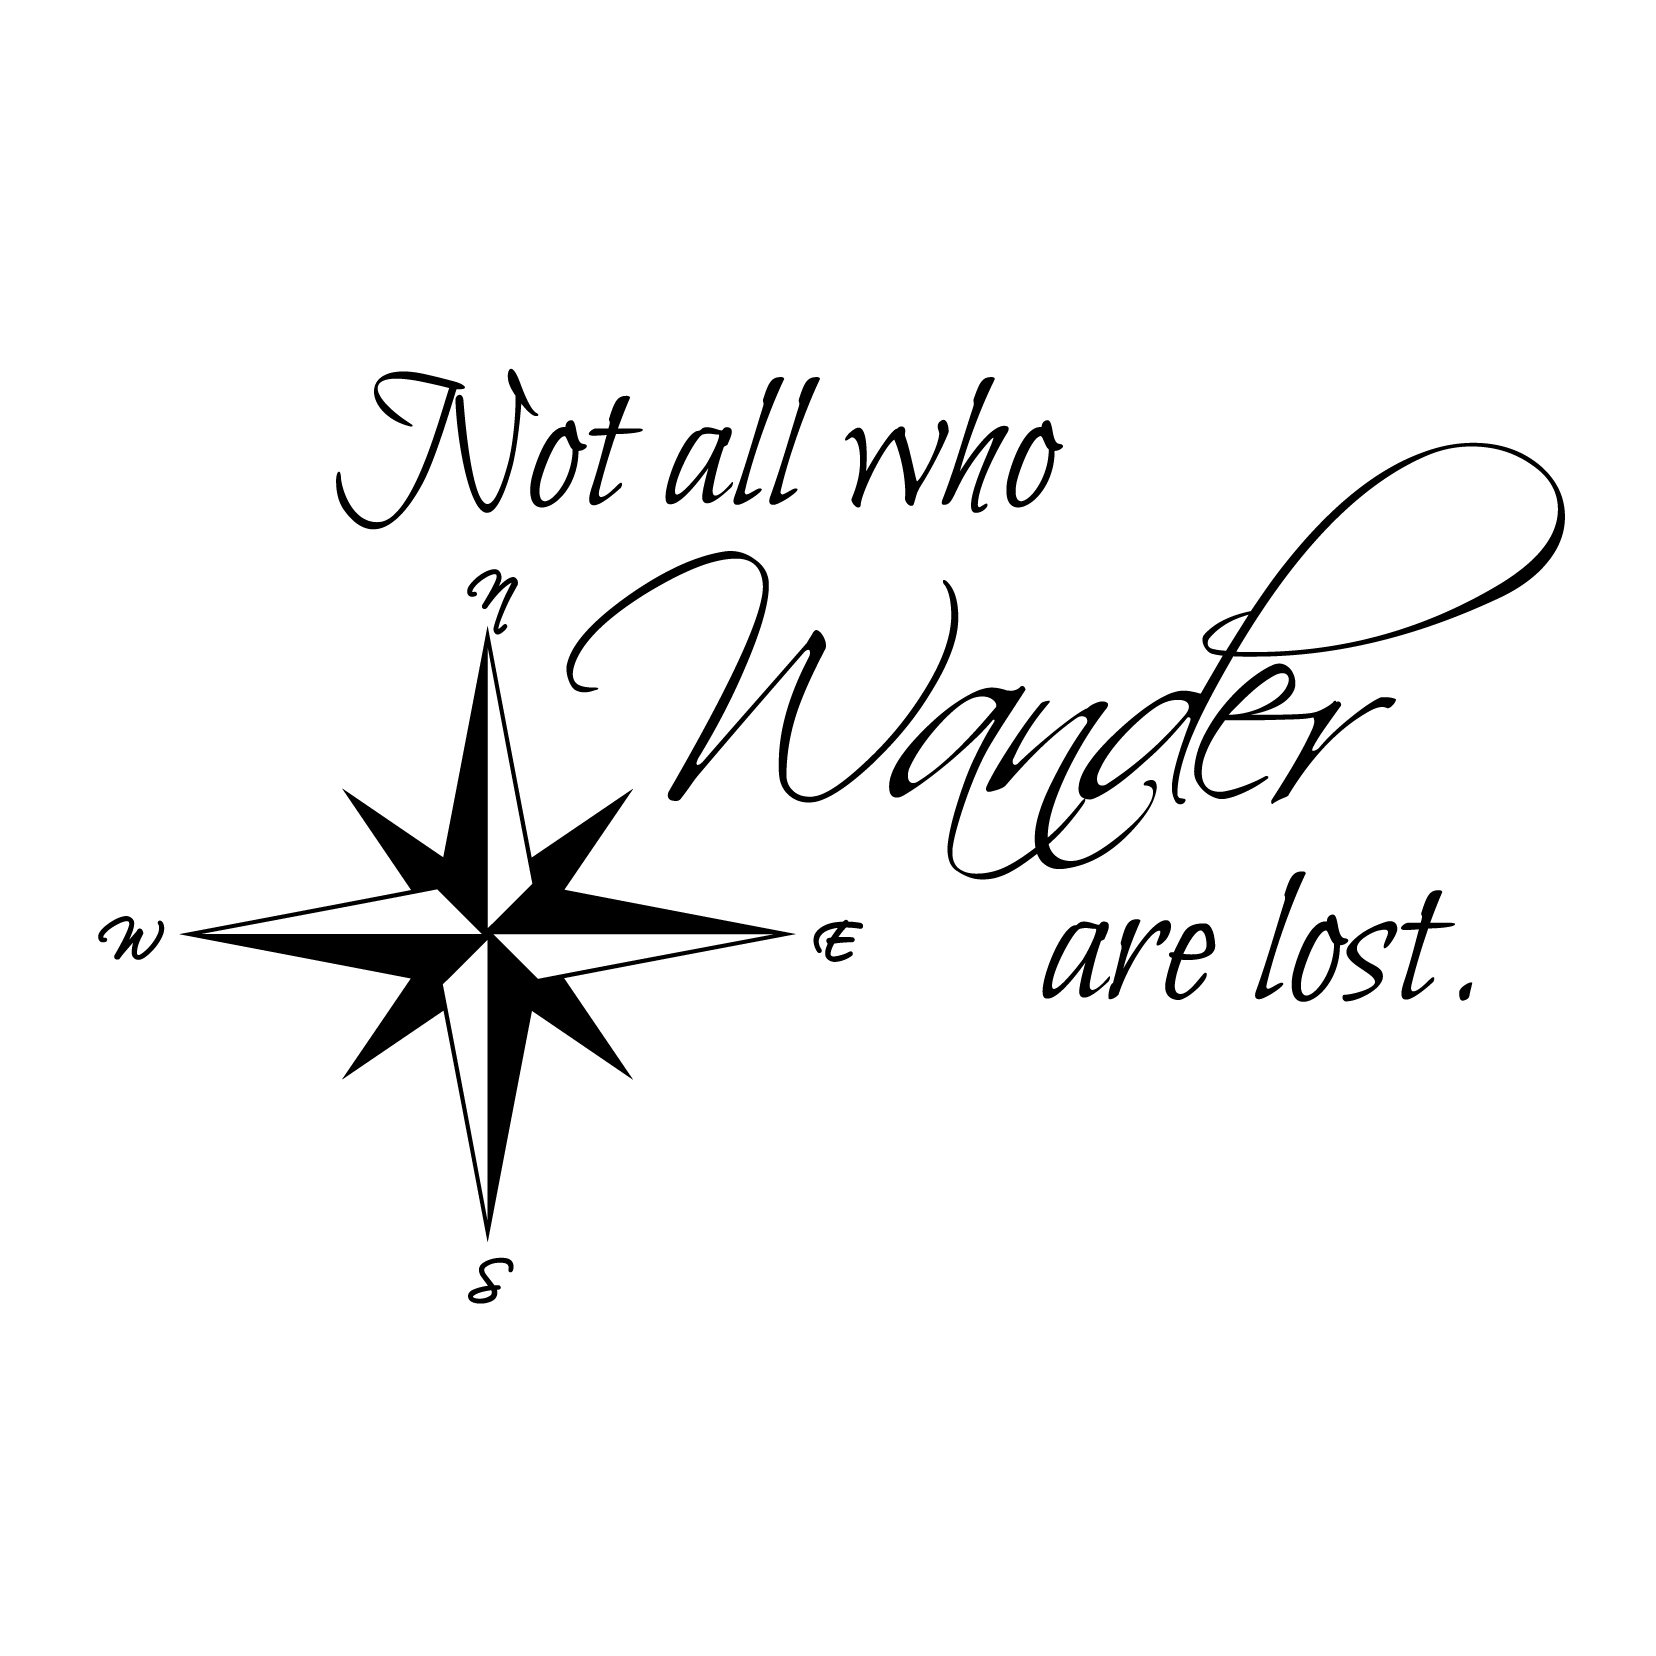 Not all Who Wander Are Lost Gandalf Quote - Custom Vinyl Wall Art Decal Decor, Wall Decor, for Homes, Offices, Kids Rooms, Nurseries, Schools, High Schools, Colleges, Universities, Interior Designers, Architects, Remodelers